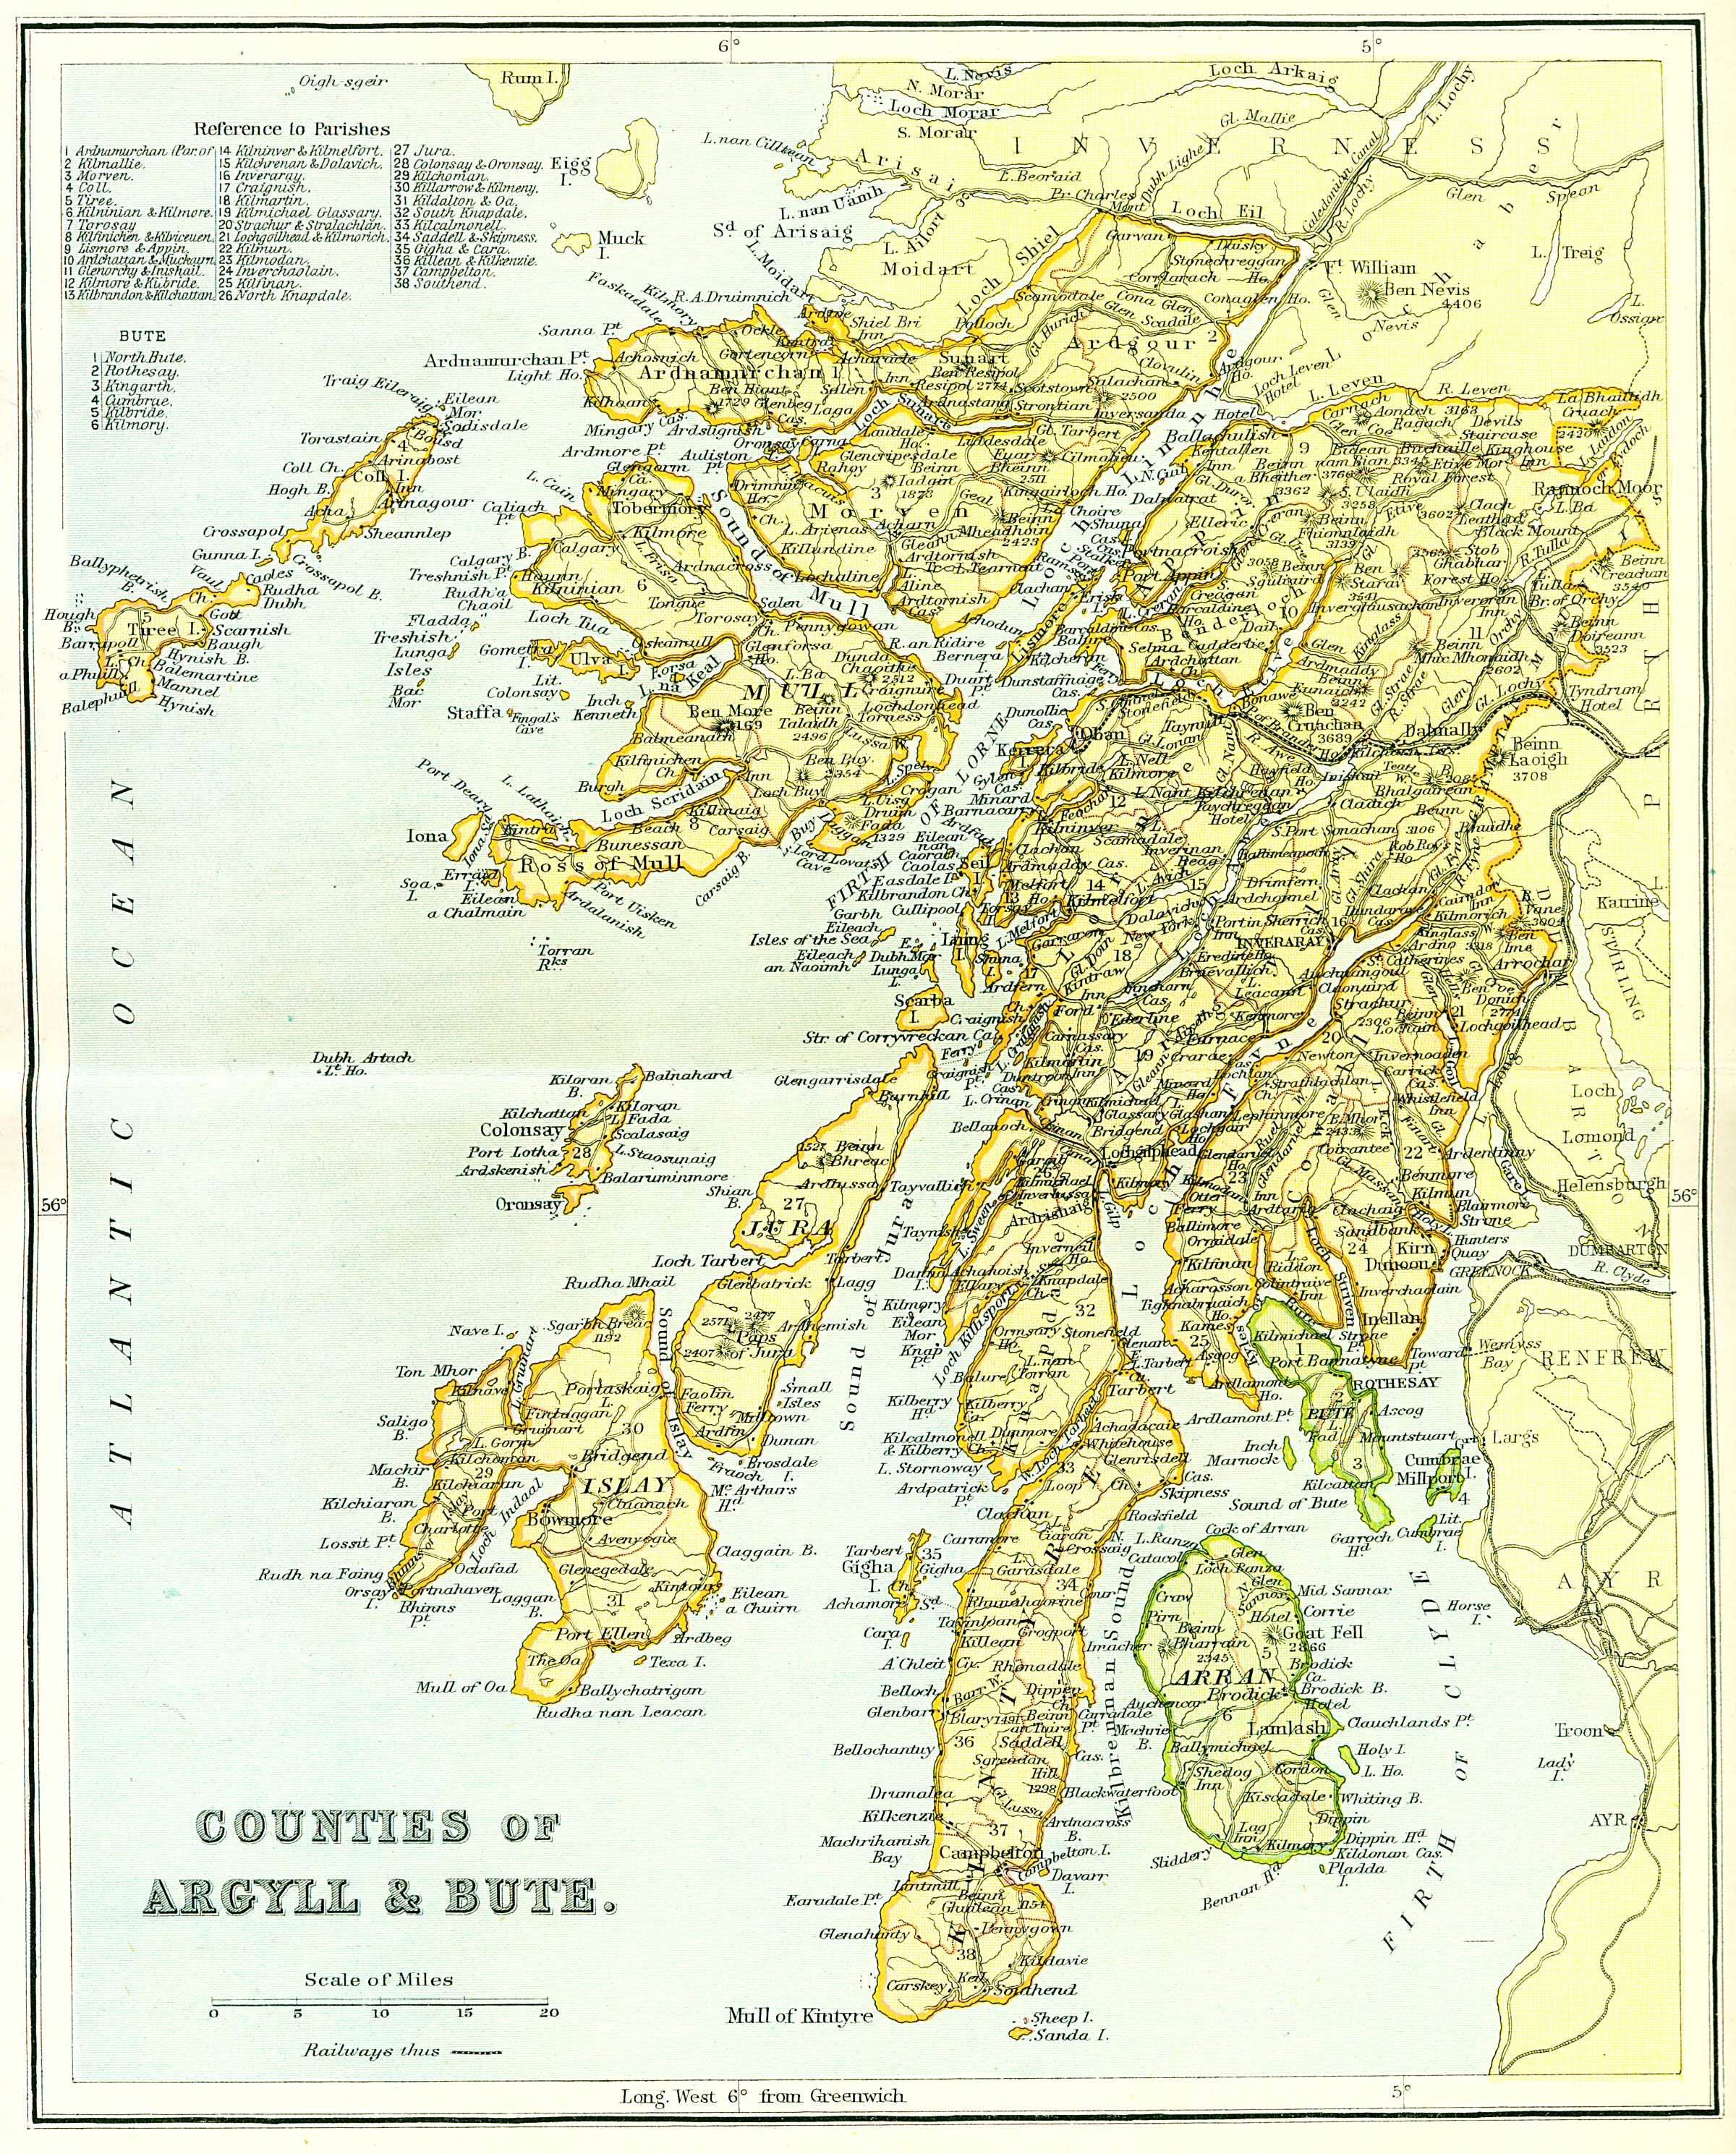 Map Of Argyll And Bute Ordnance Gazetteer of Scotland   Counties of Argyll & Bute Map Map Of Argyll And Bute